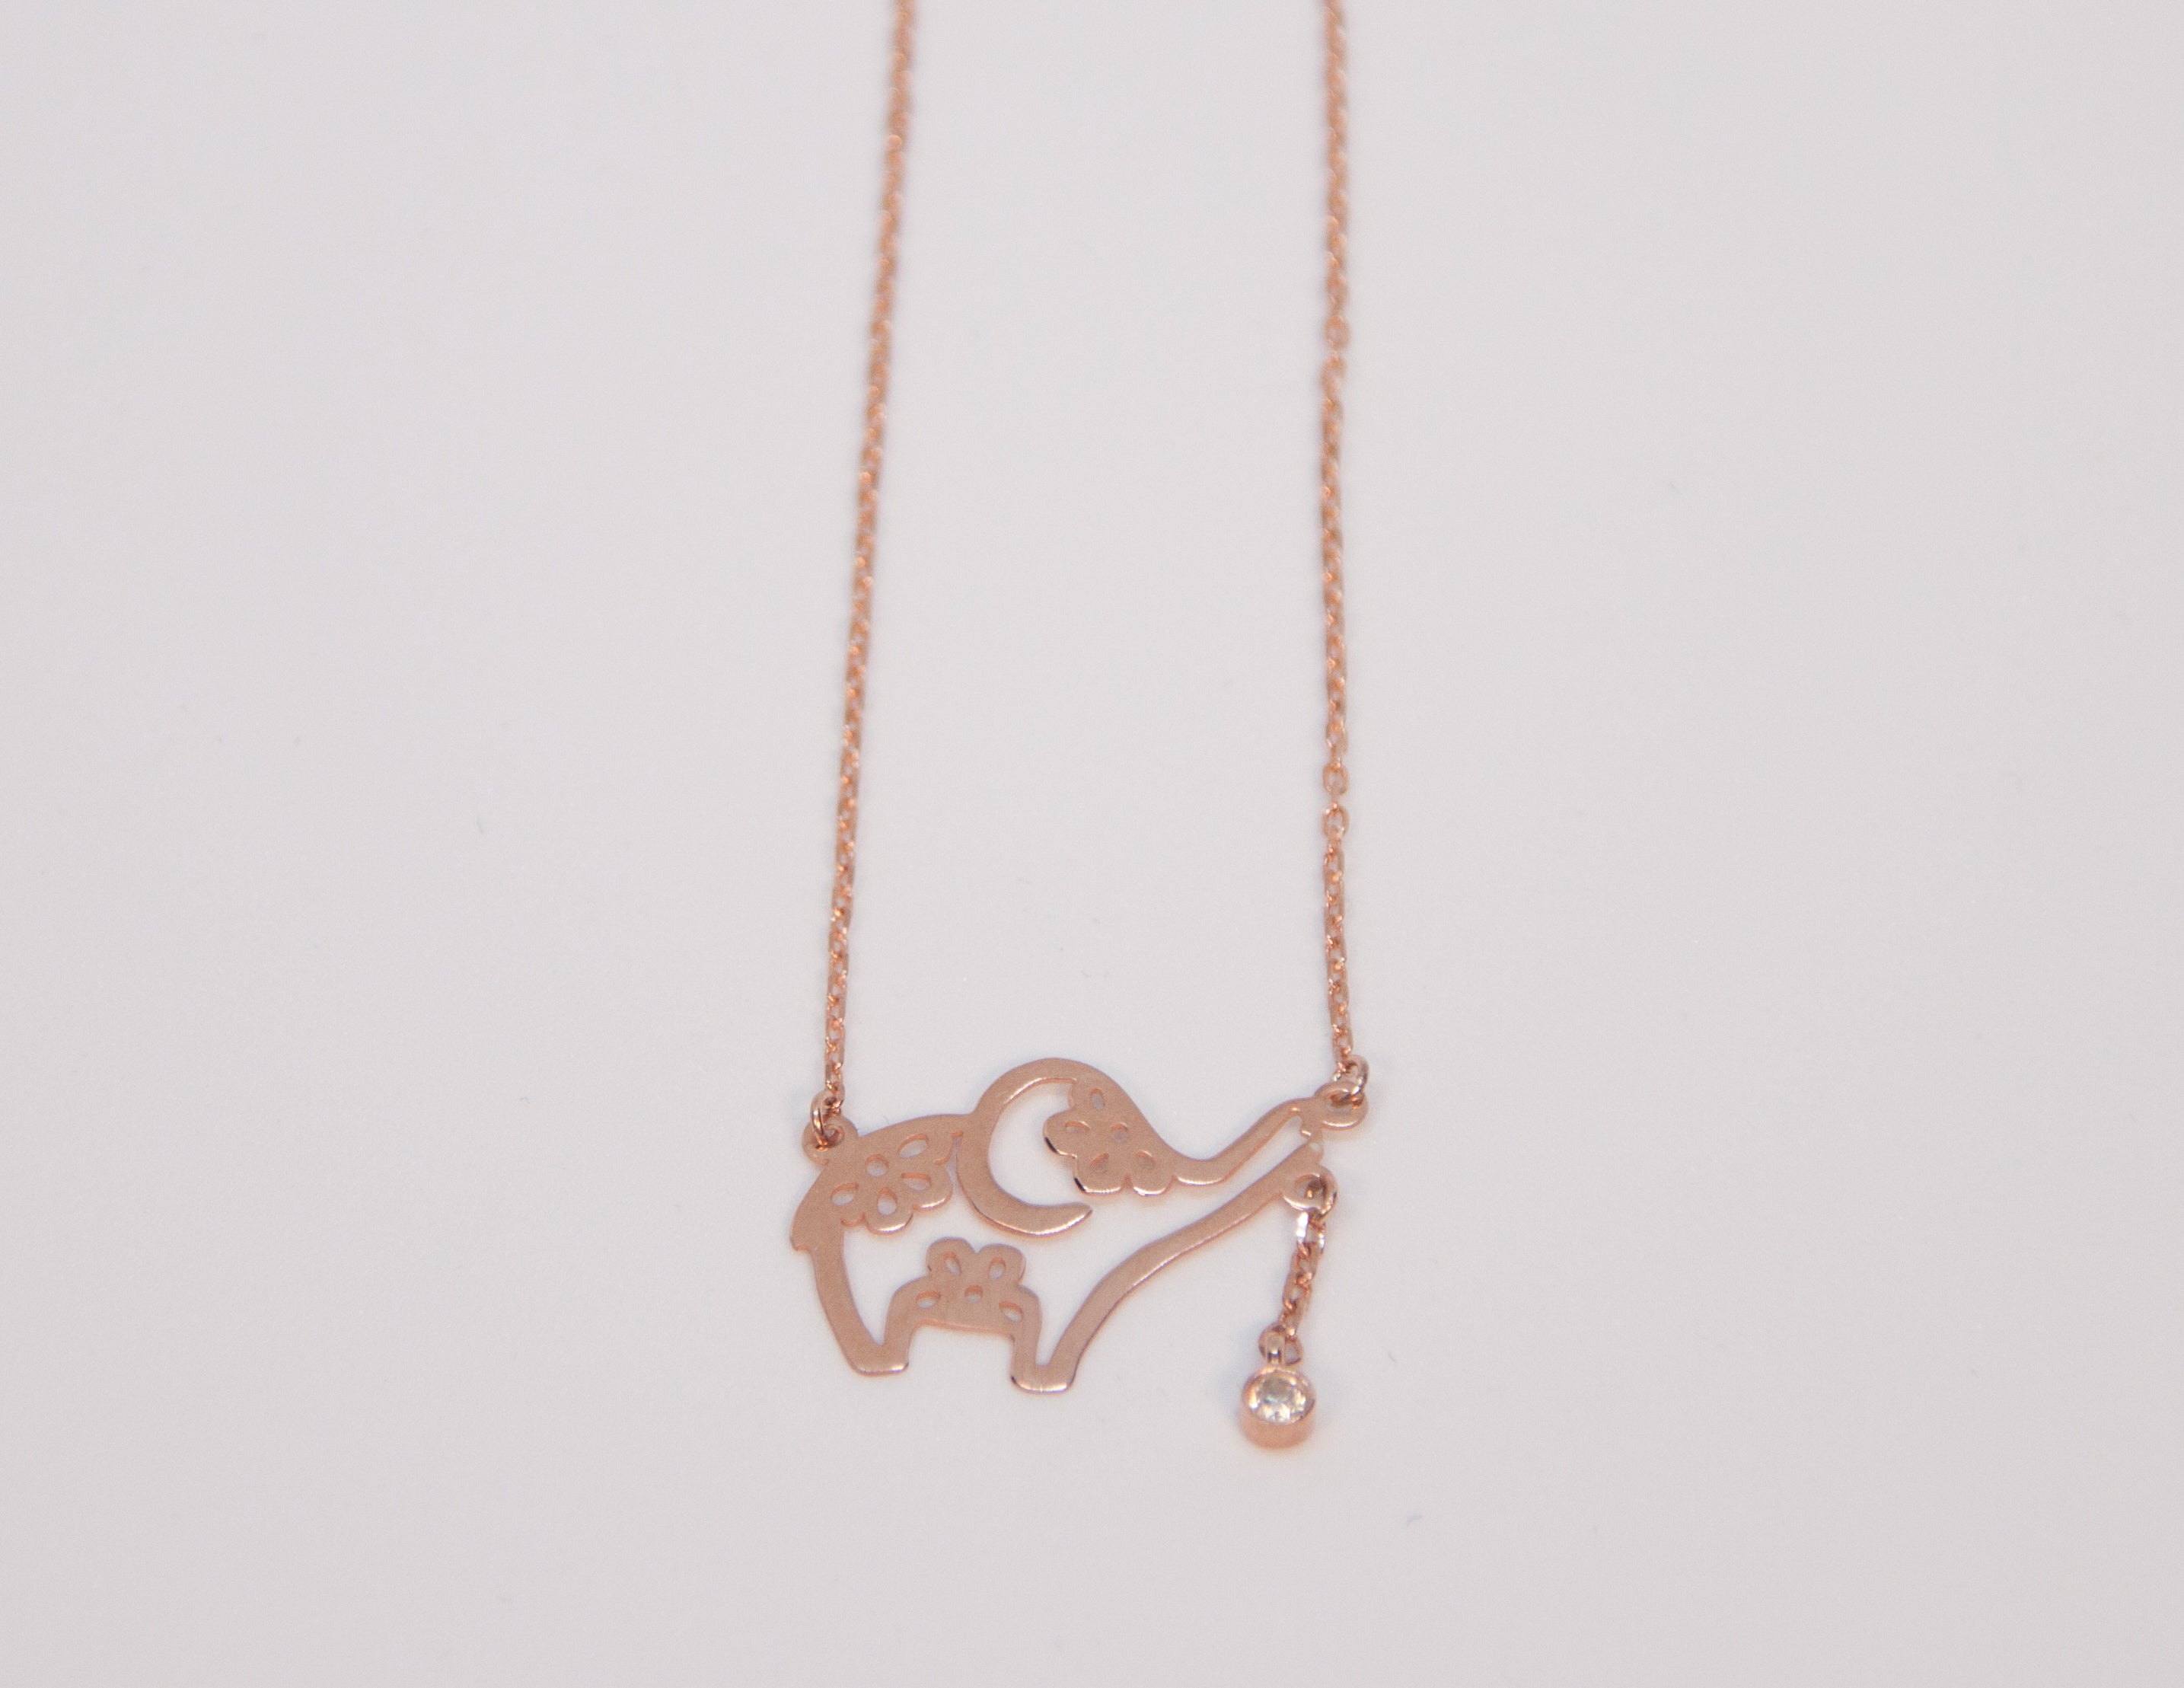 elephant necklace with flower and diamond details